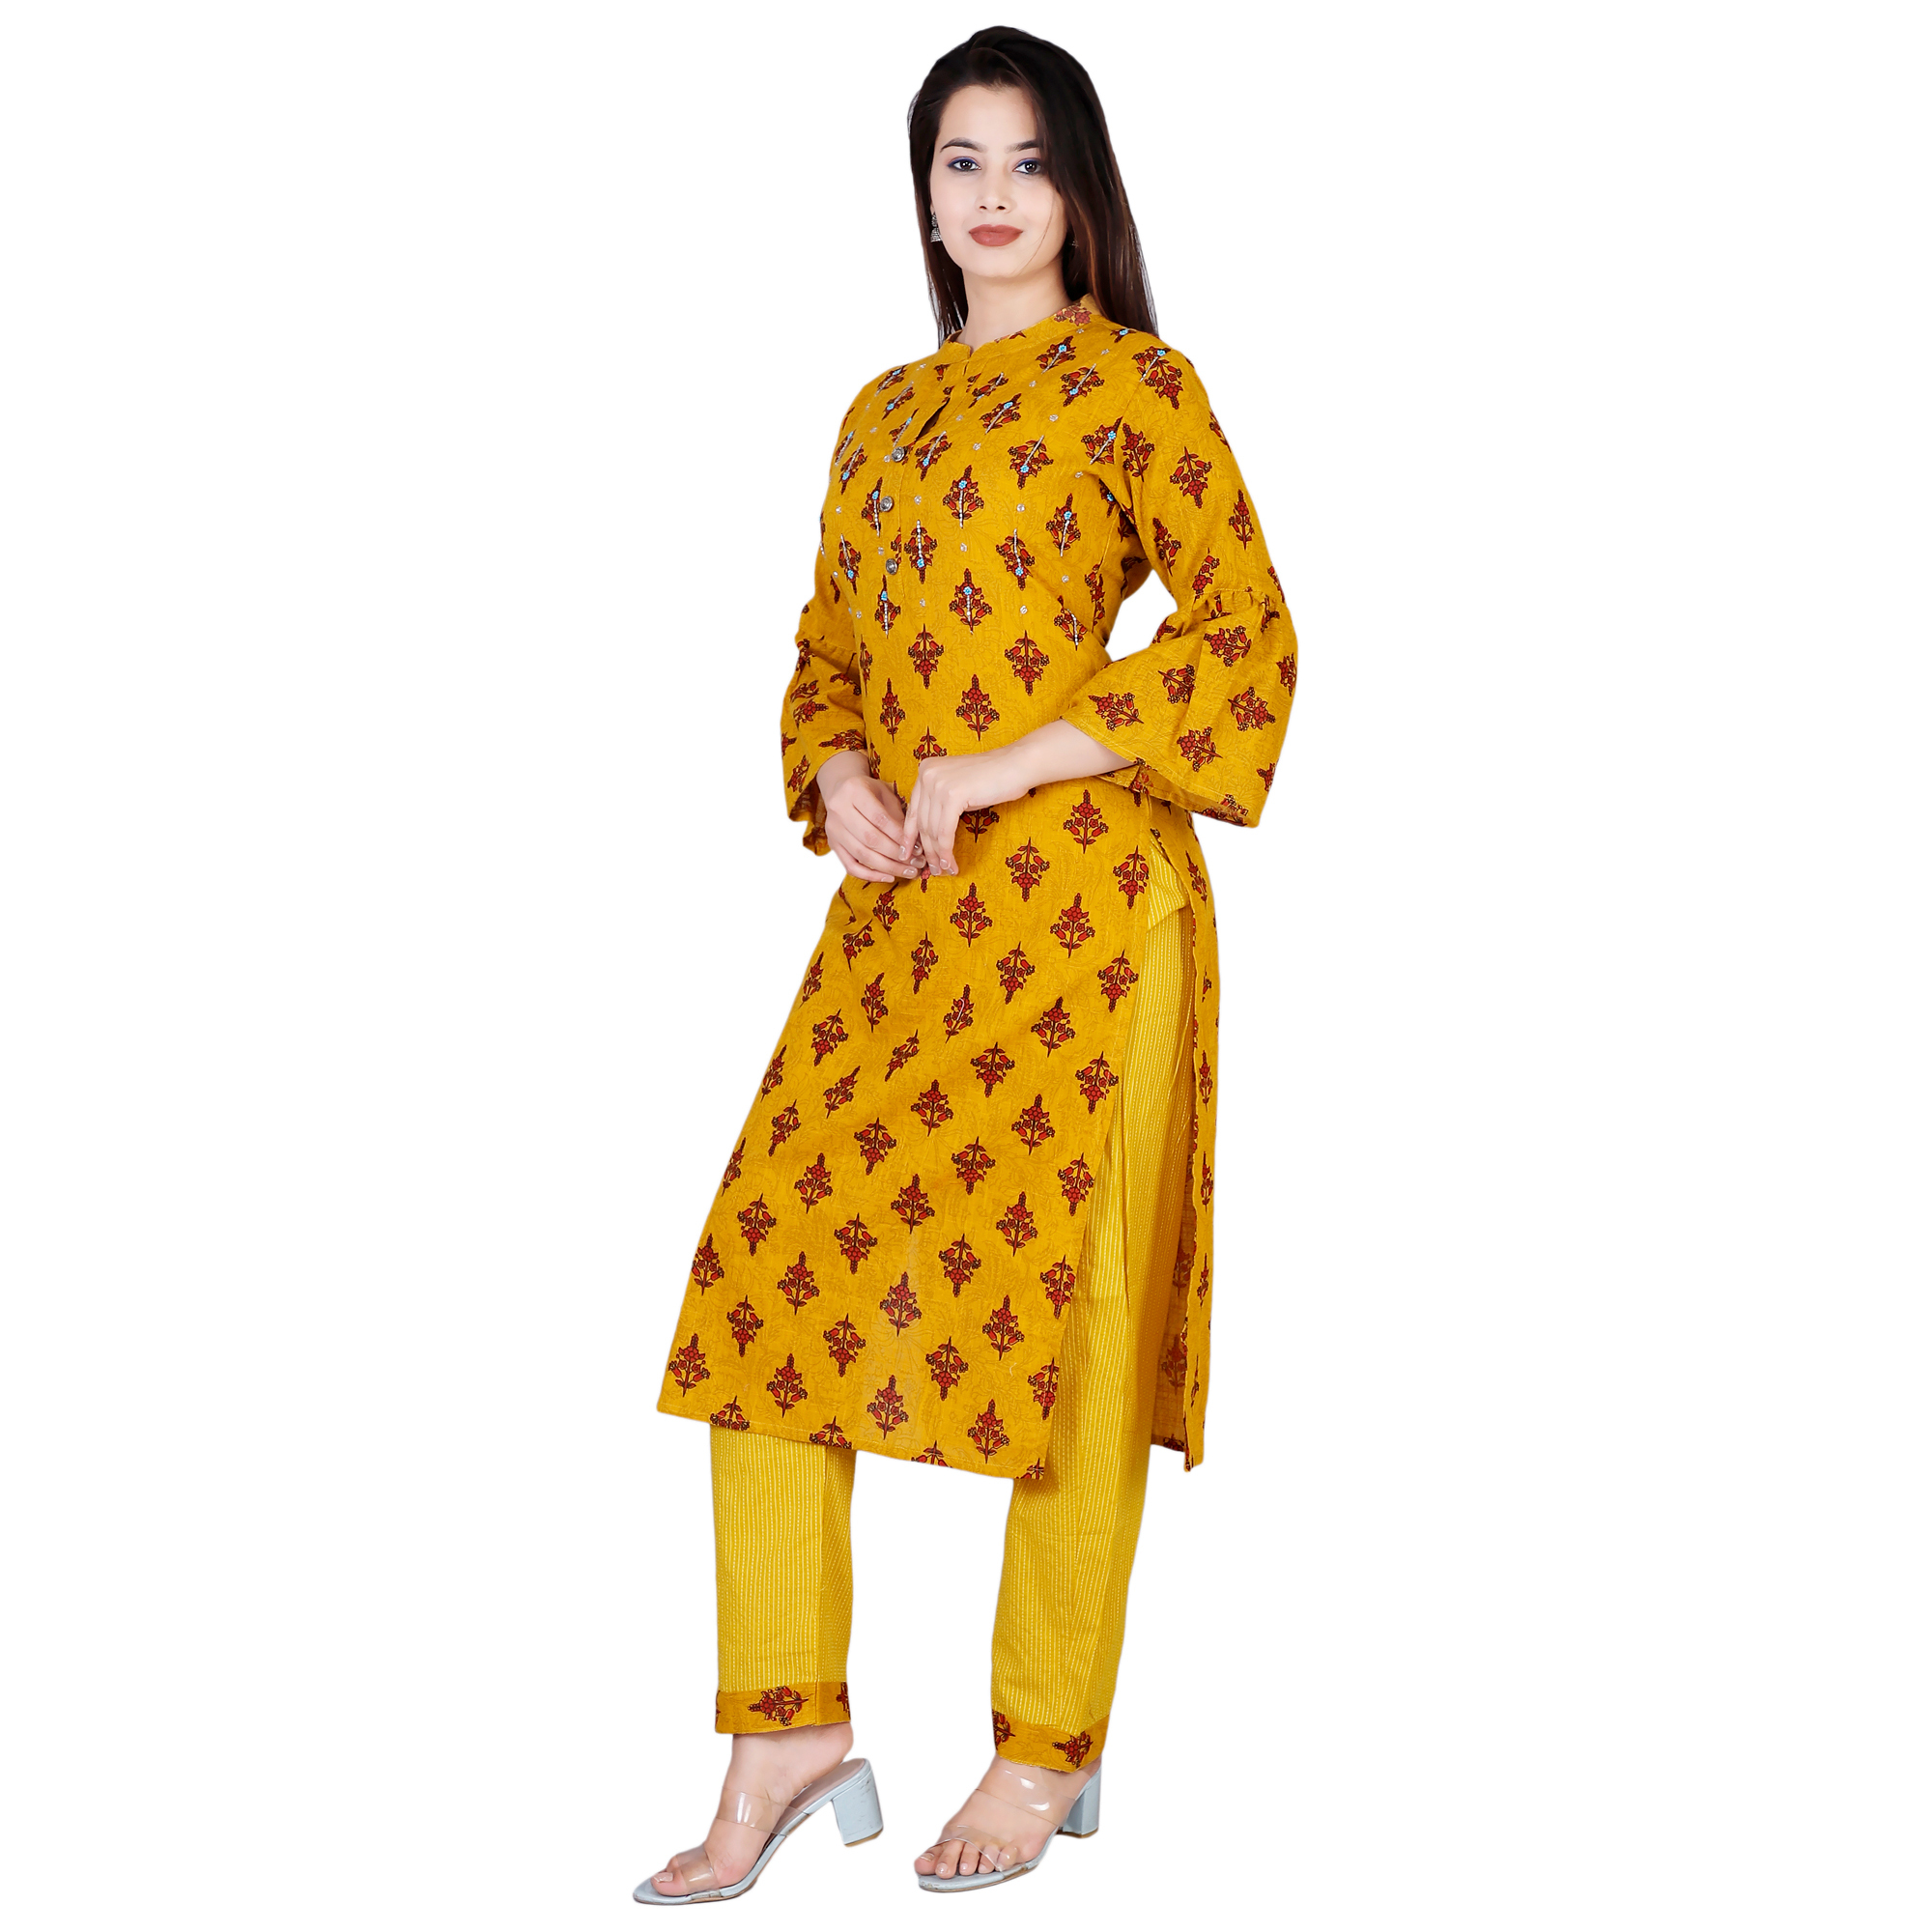 JSC 1137 Printed Cotton Casual Kurti